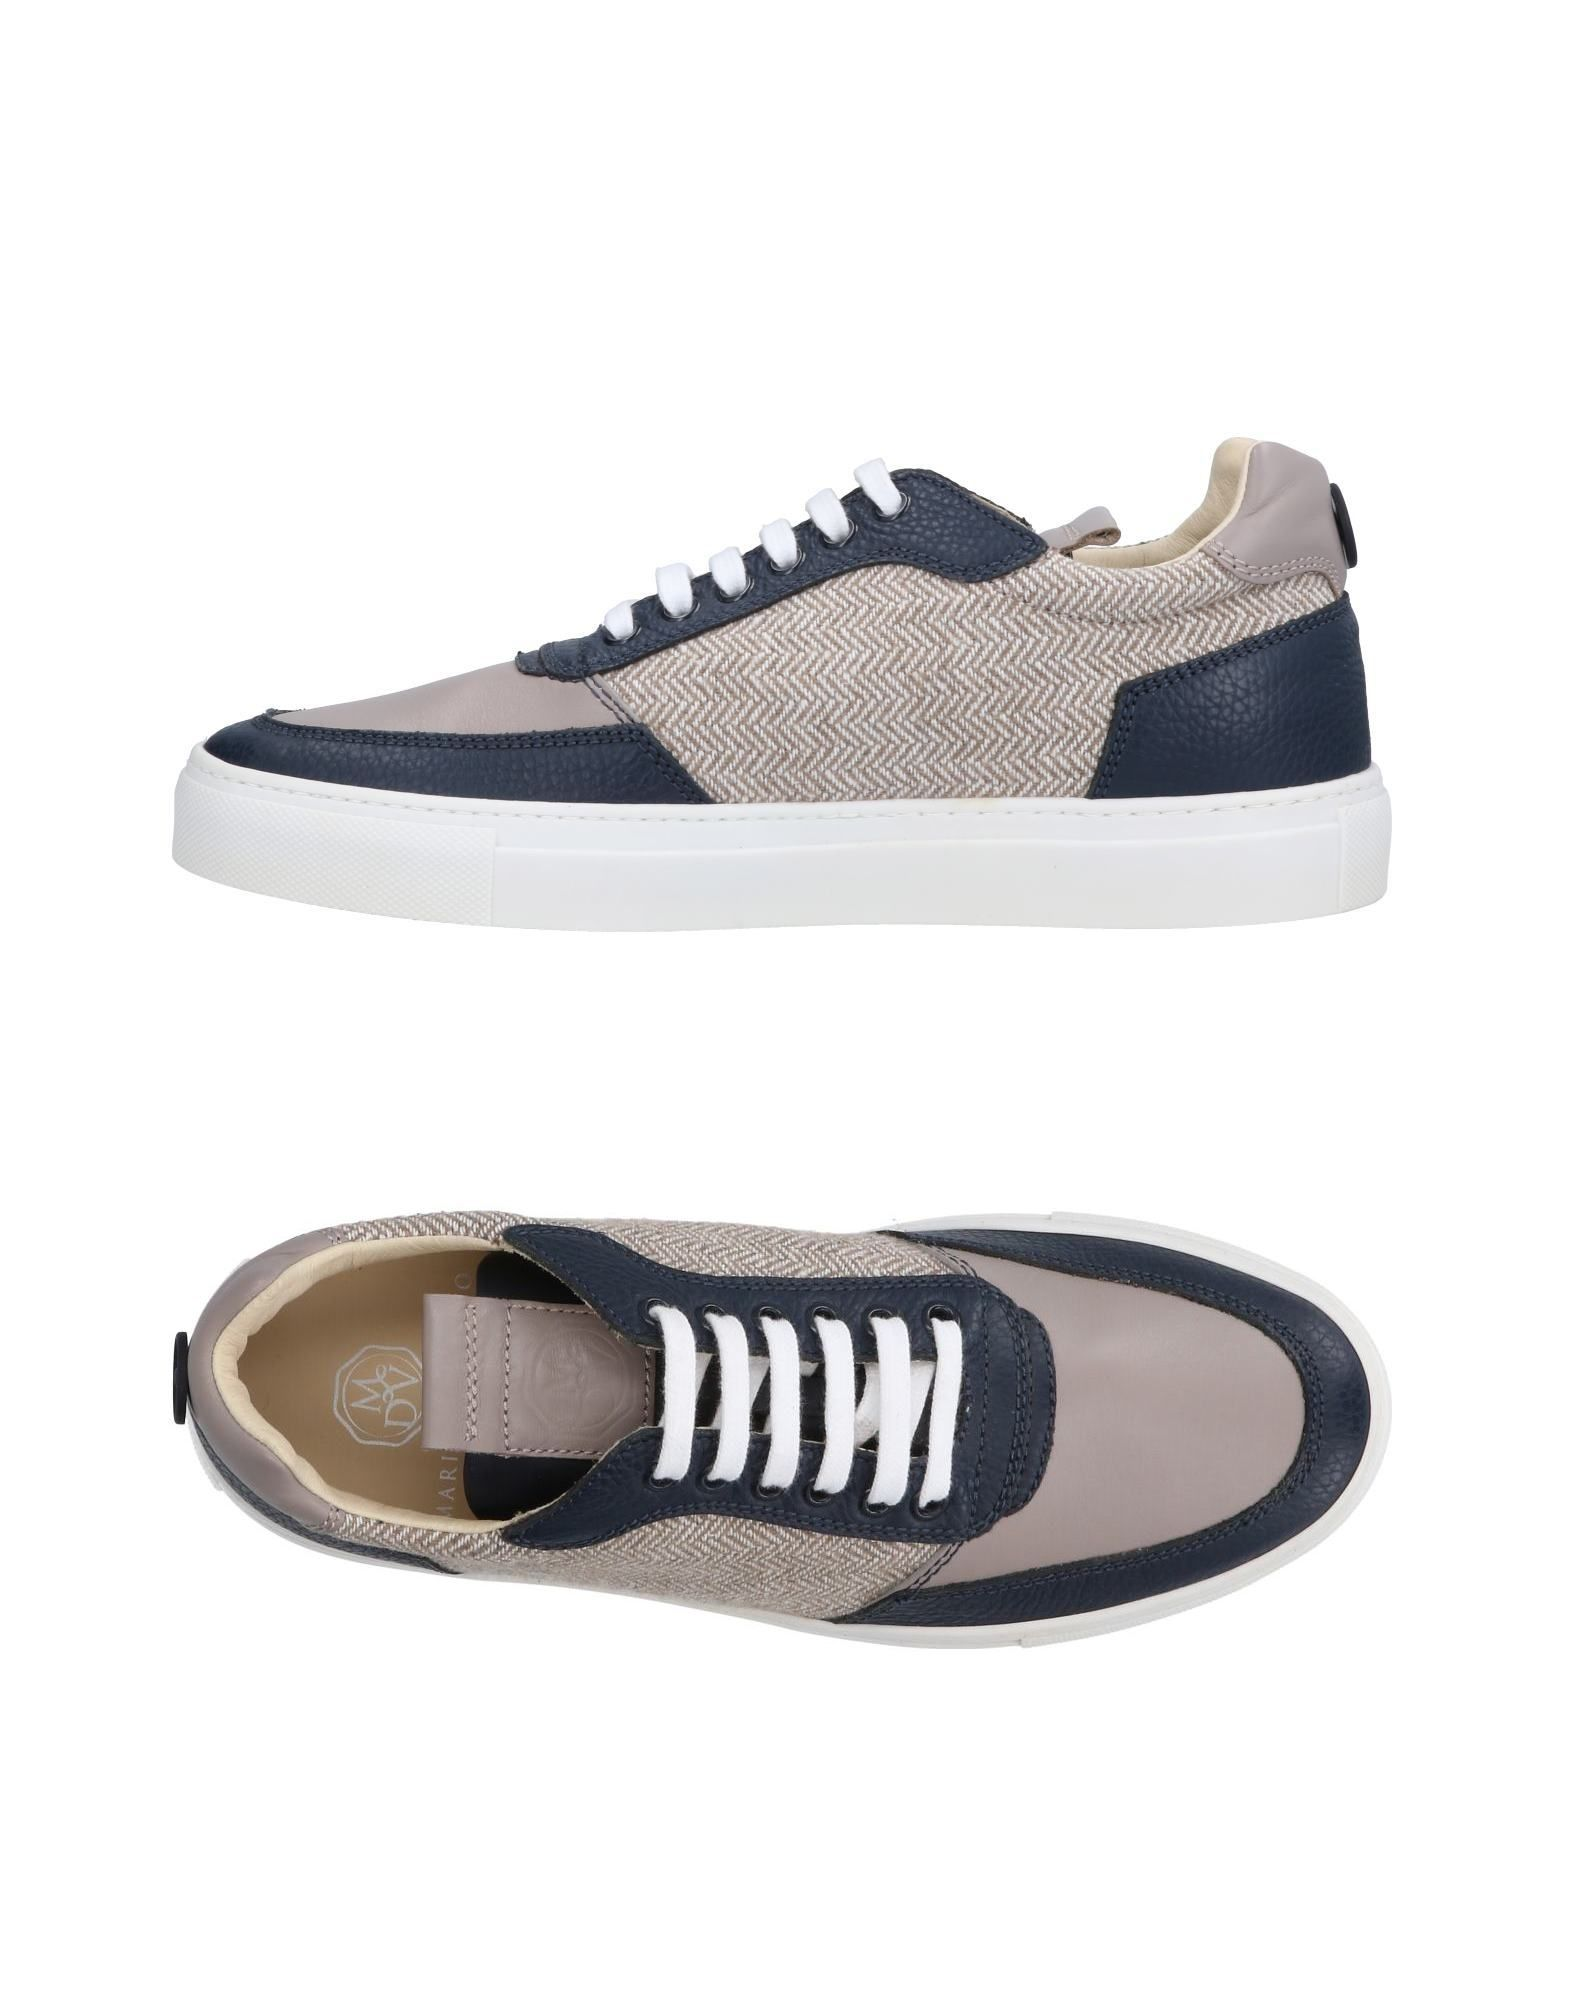 MARIANO DI VAIO Sneakers in Sand